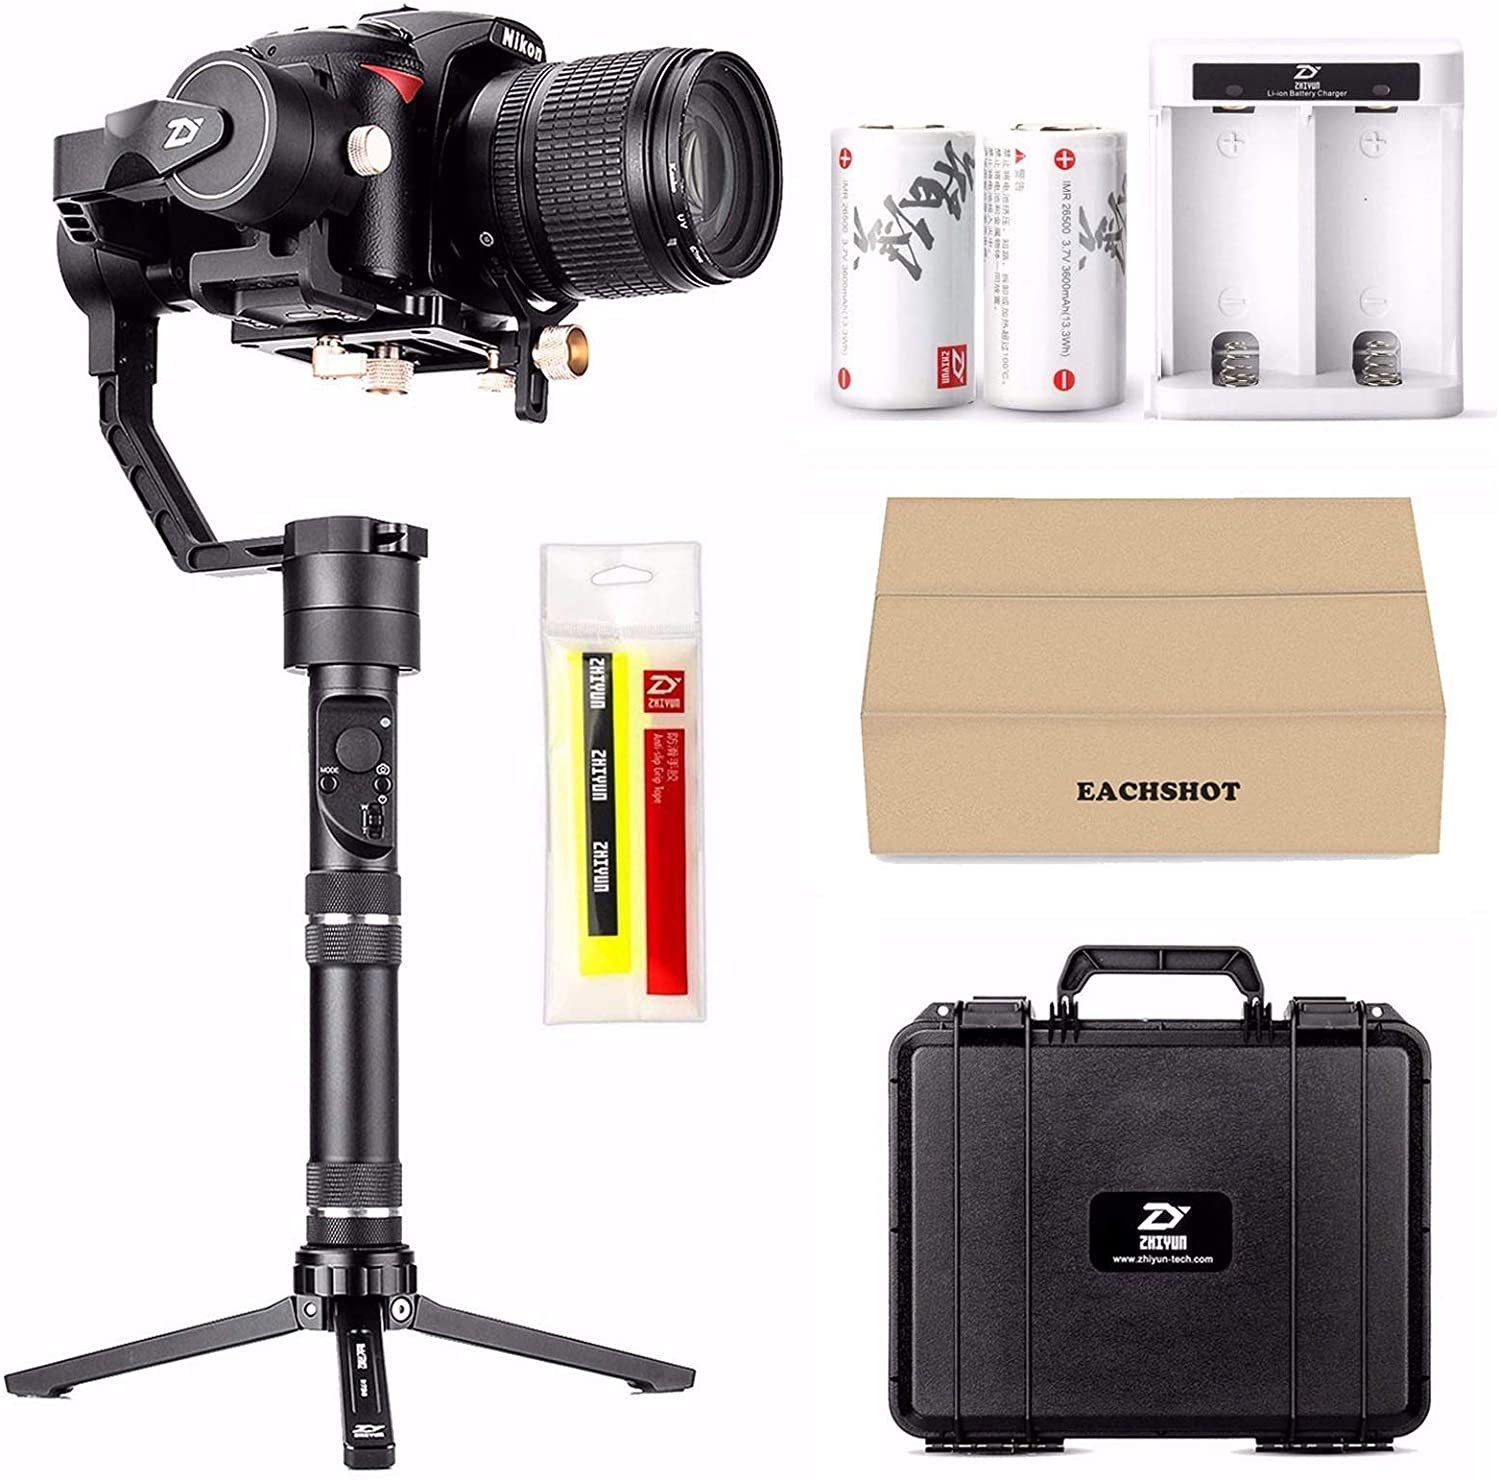 Zhiyun Crane Plus 3-Axis Handheld Gimbal Stabilizer for DSLR and Mirrorless Camera compatible Sony Panasonic LUMIX Nikon Canon POV Large Payload Timelapse Object Tracking New Version zhi yun Crane V2 : Camera & Photo